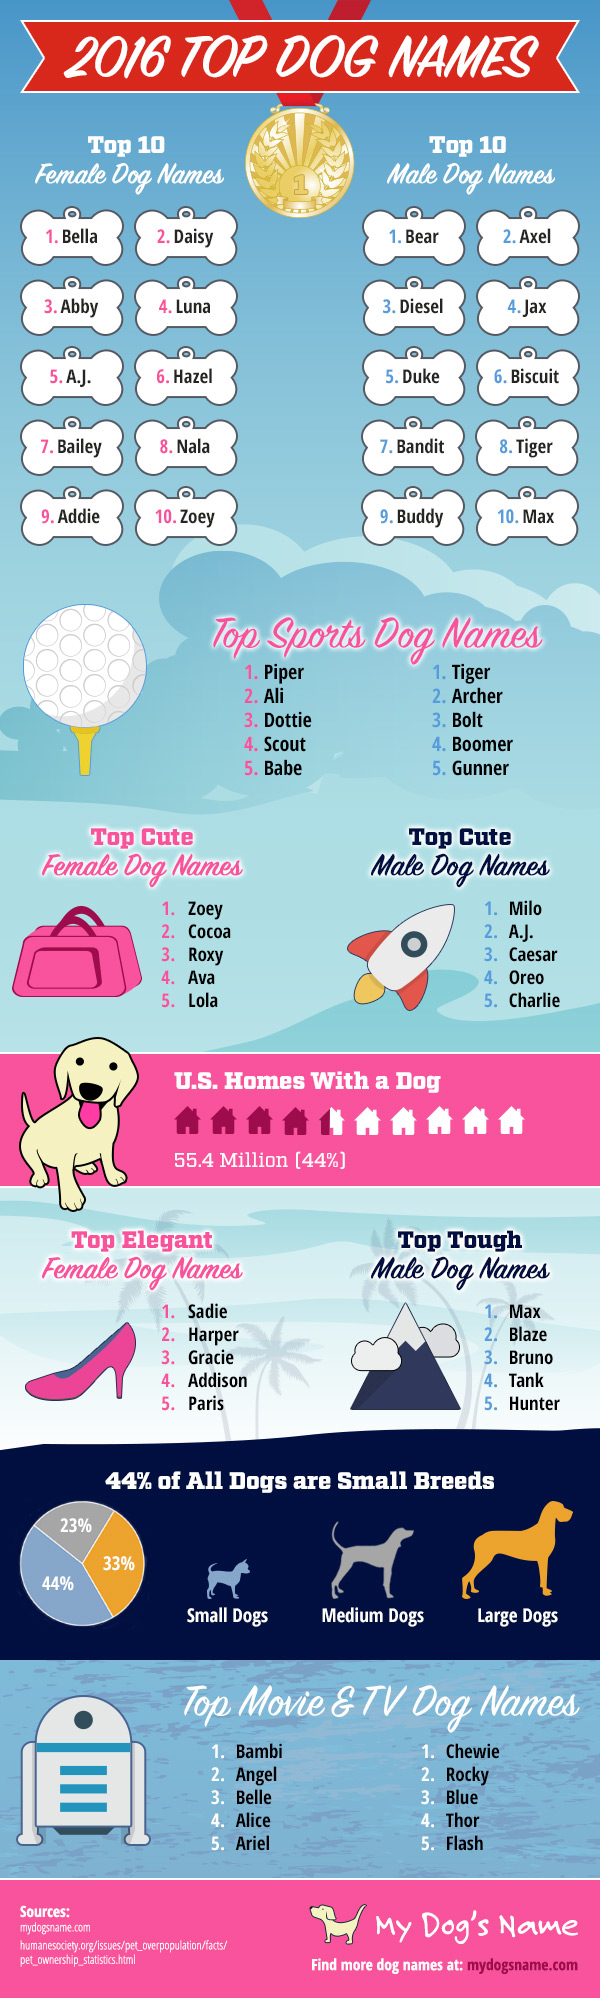 Top Dog Names of 2016